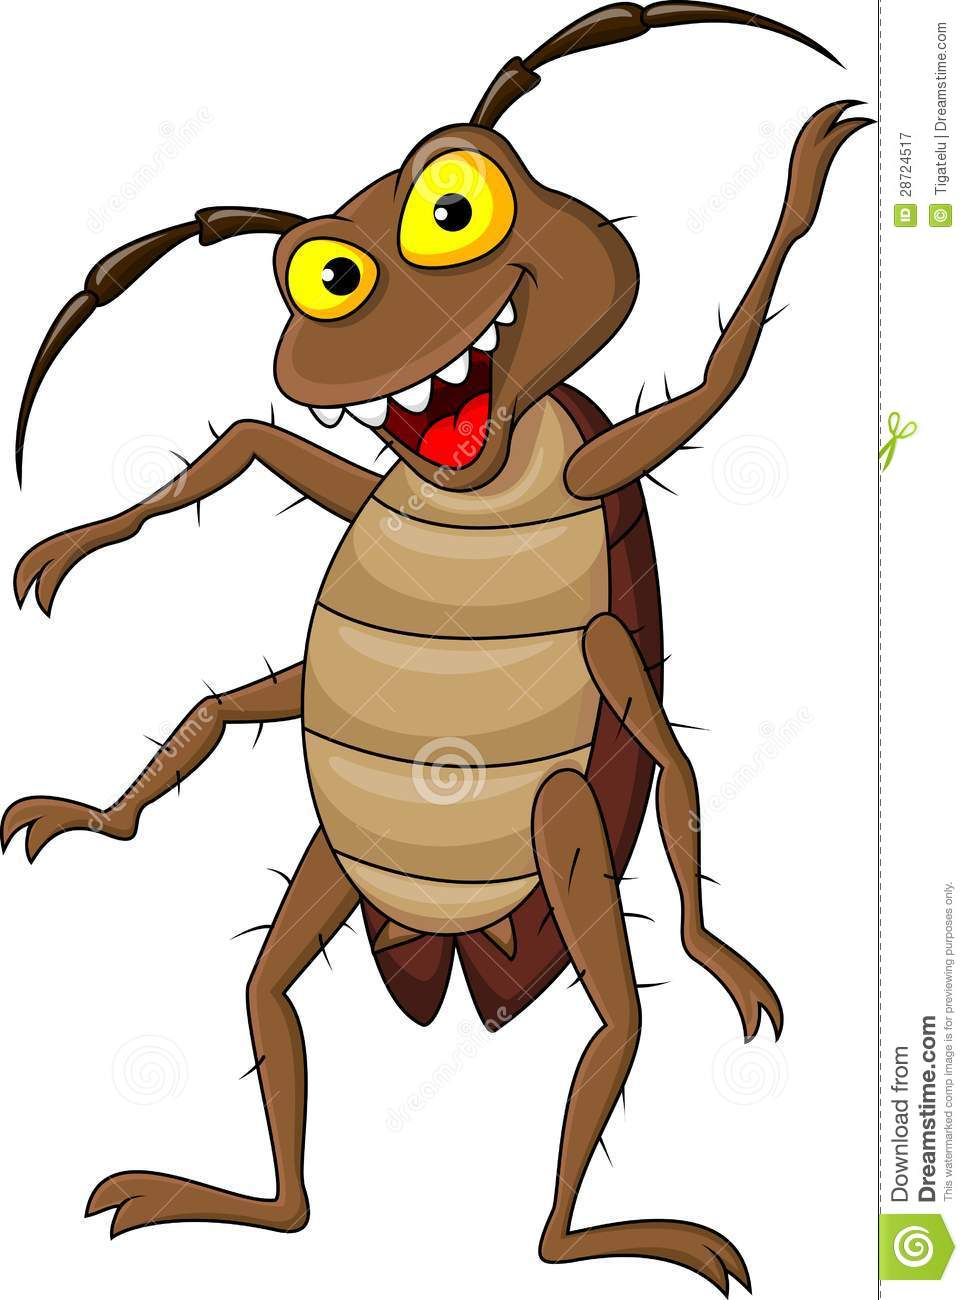 Cockroach Cartoon Royalty Free Stock Photography - Image: 28724517